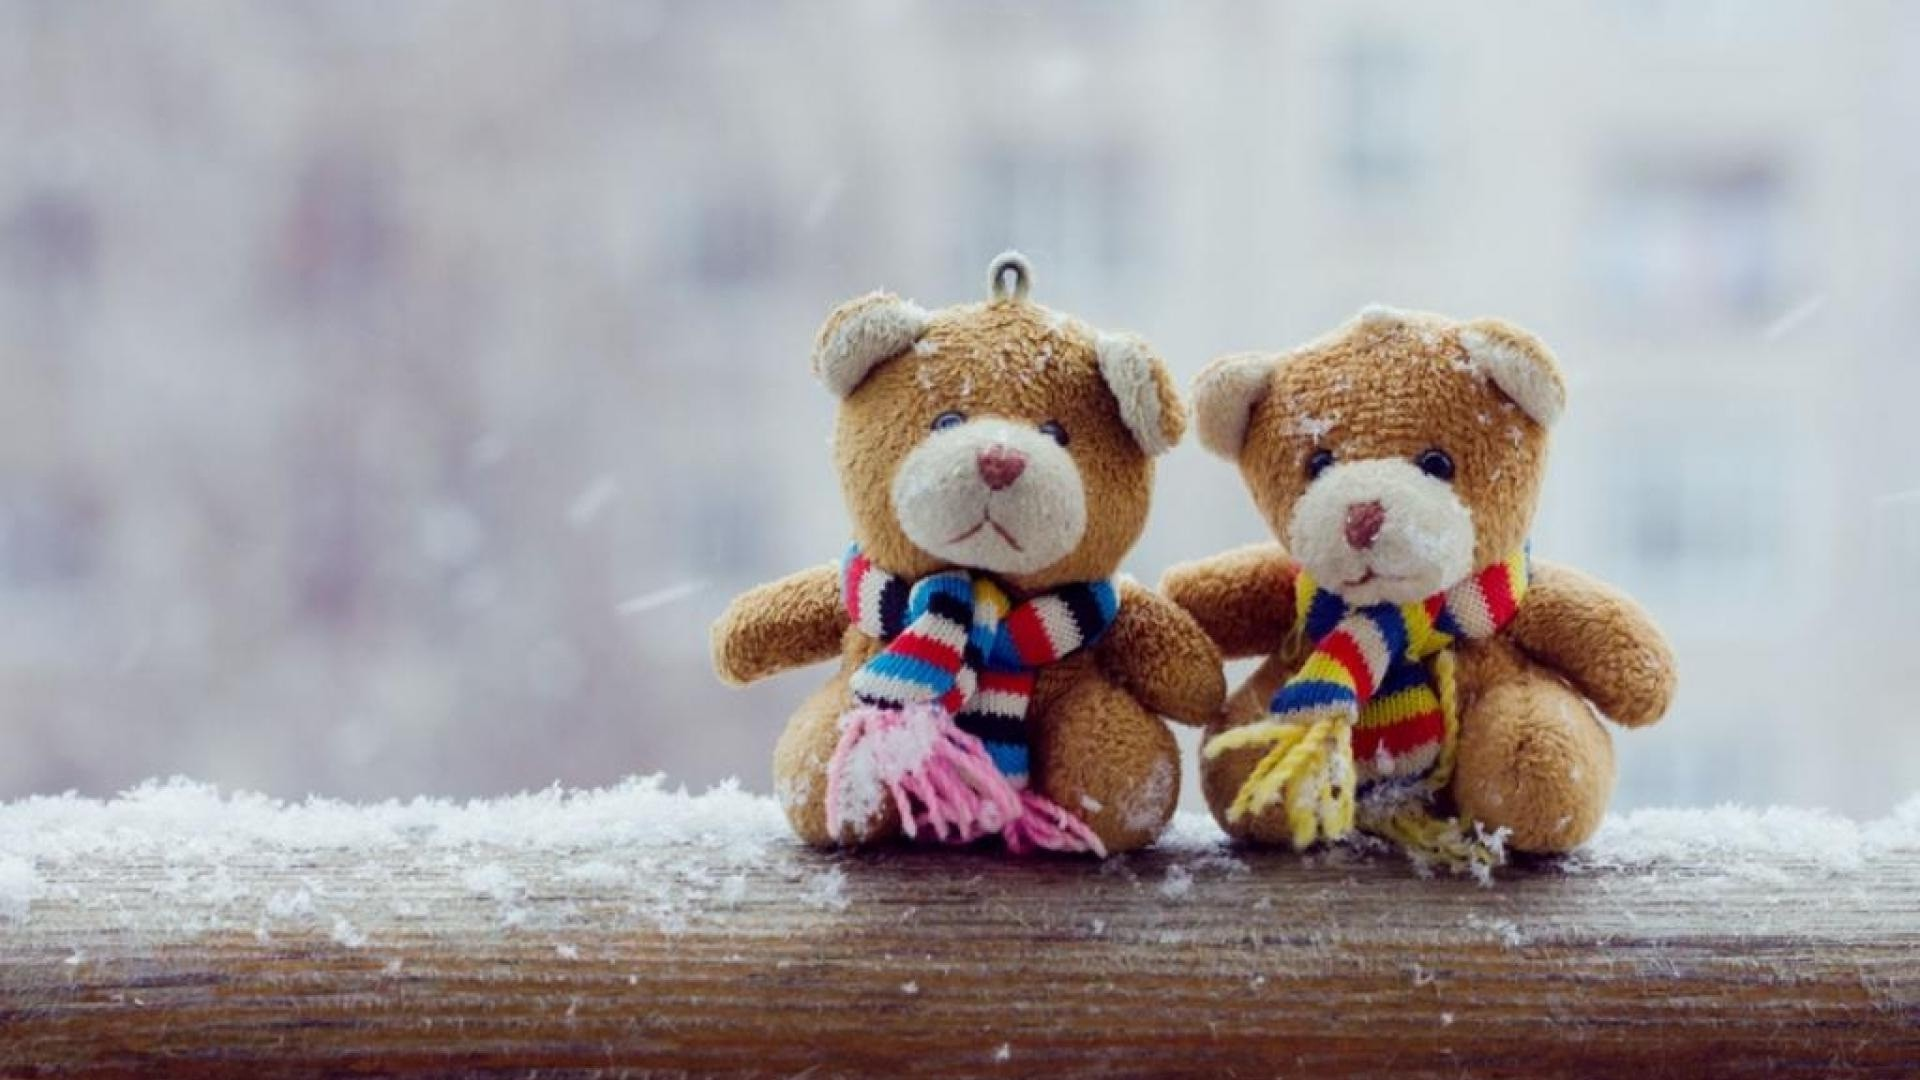 Cute Teddy Bear Wallpapers ·① WallpaperTag